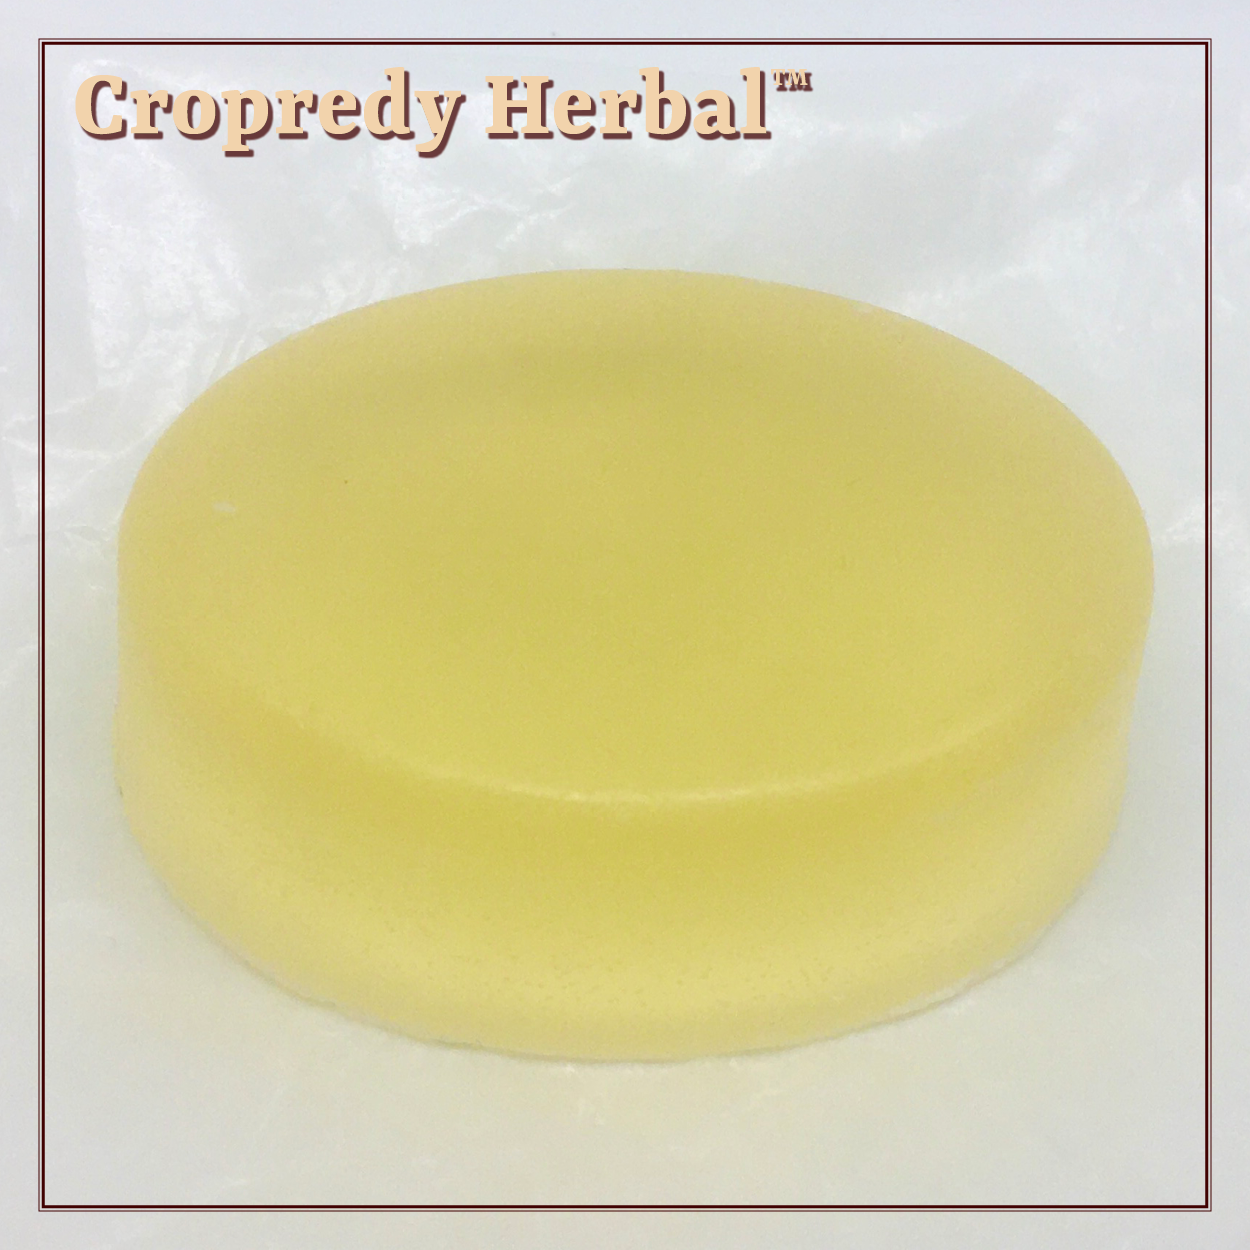 Cropredy Herbal Oil, Fiddler's Elbow Grease, Replenishing Oil, Herbal, Antimicrobial. skin nourishing, conditioning, soothing